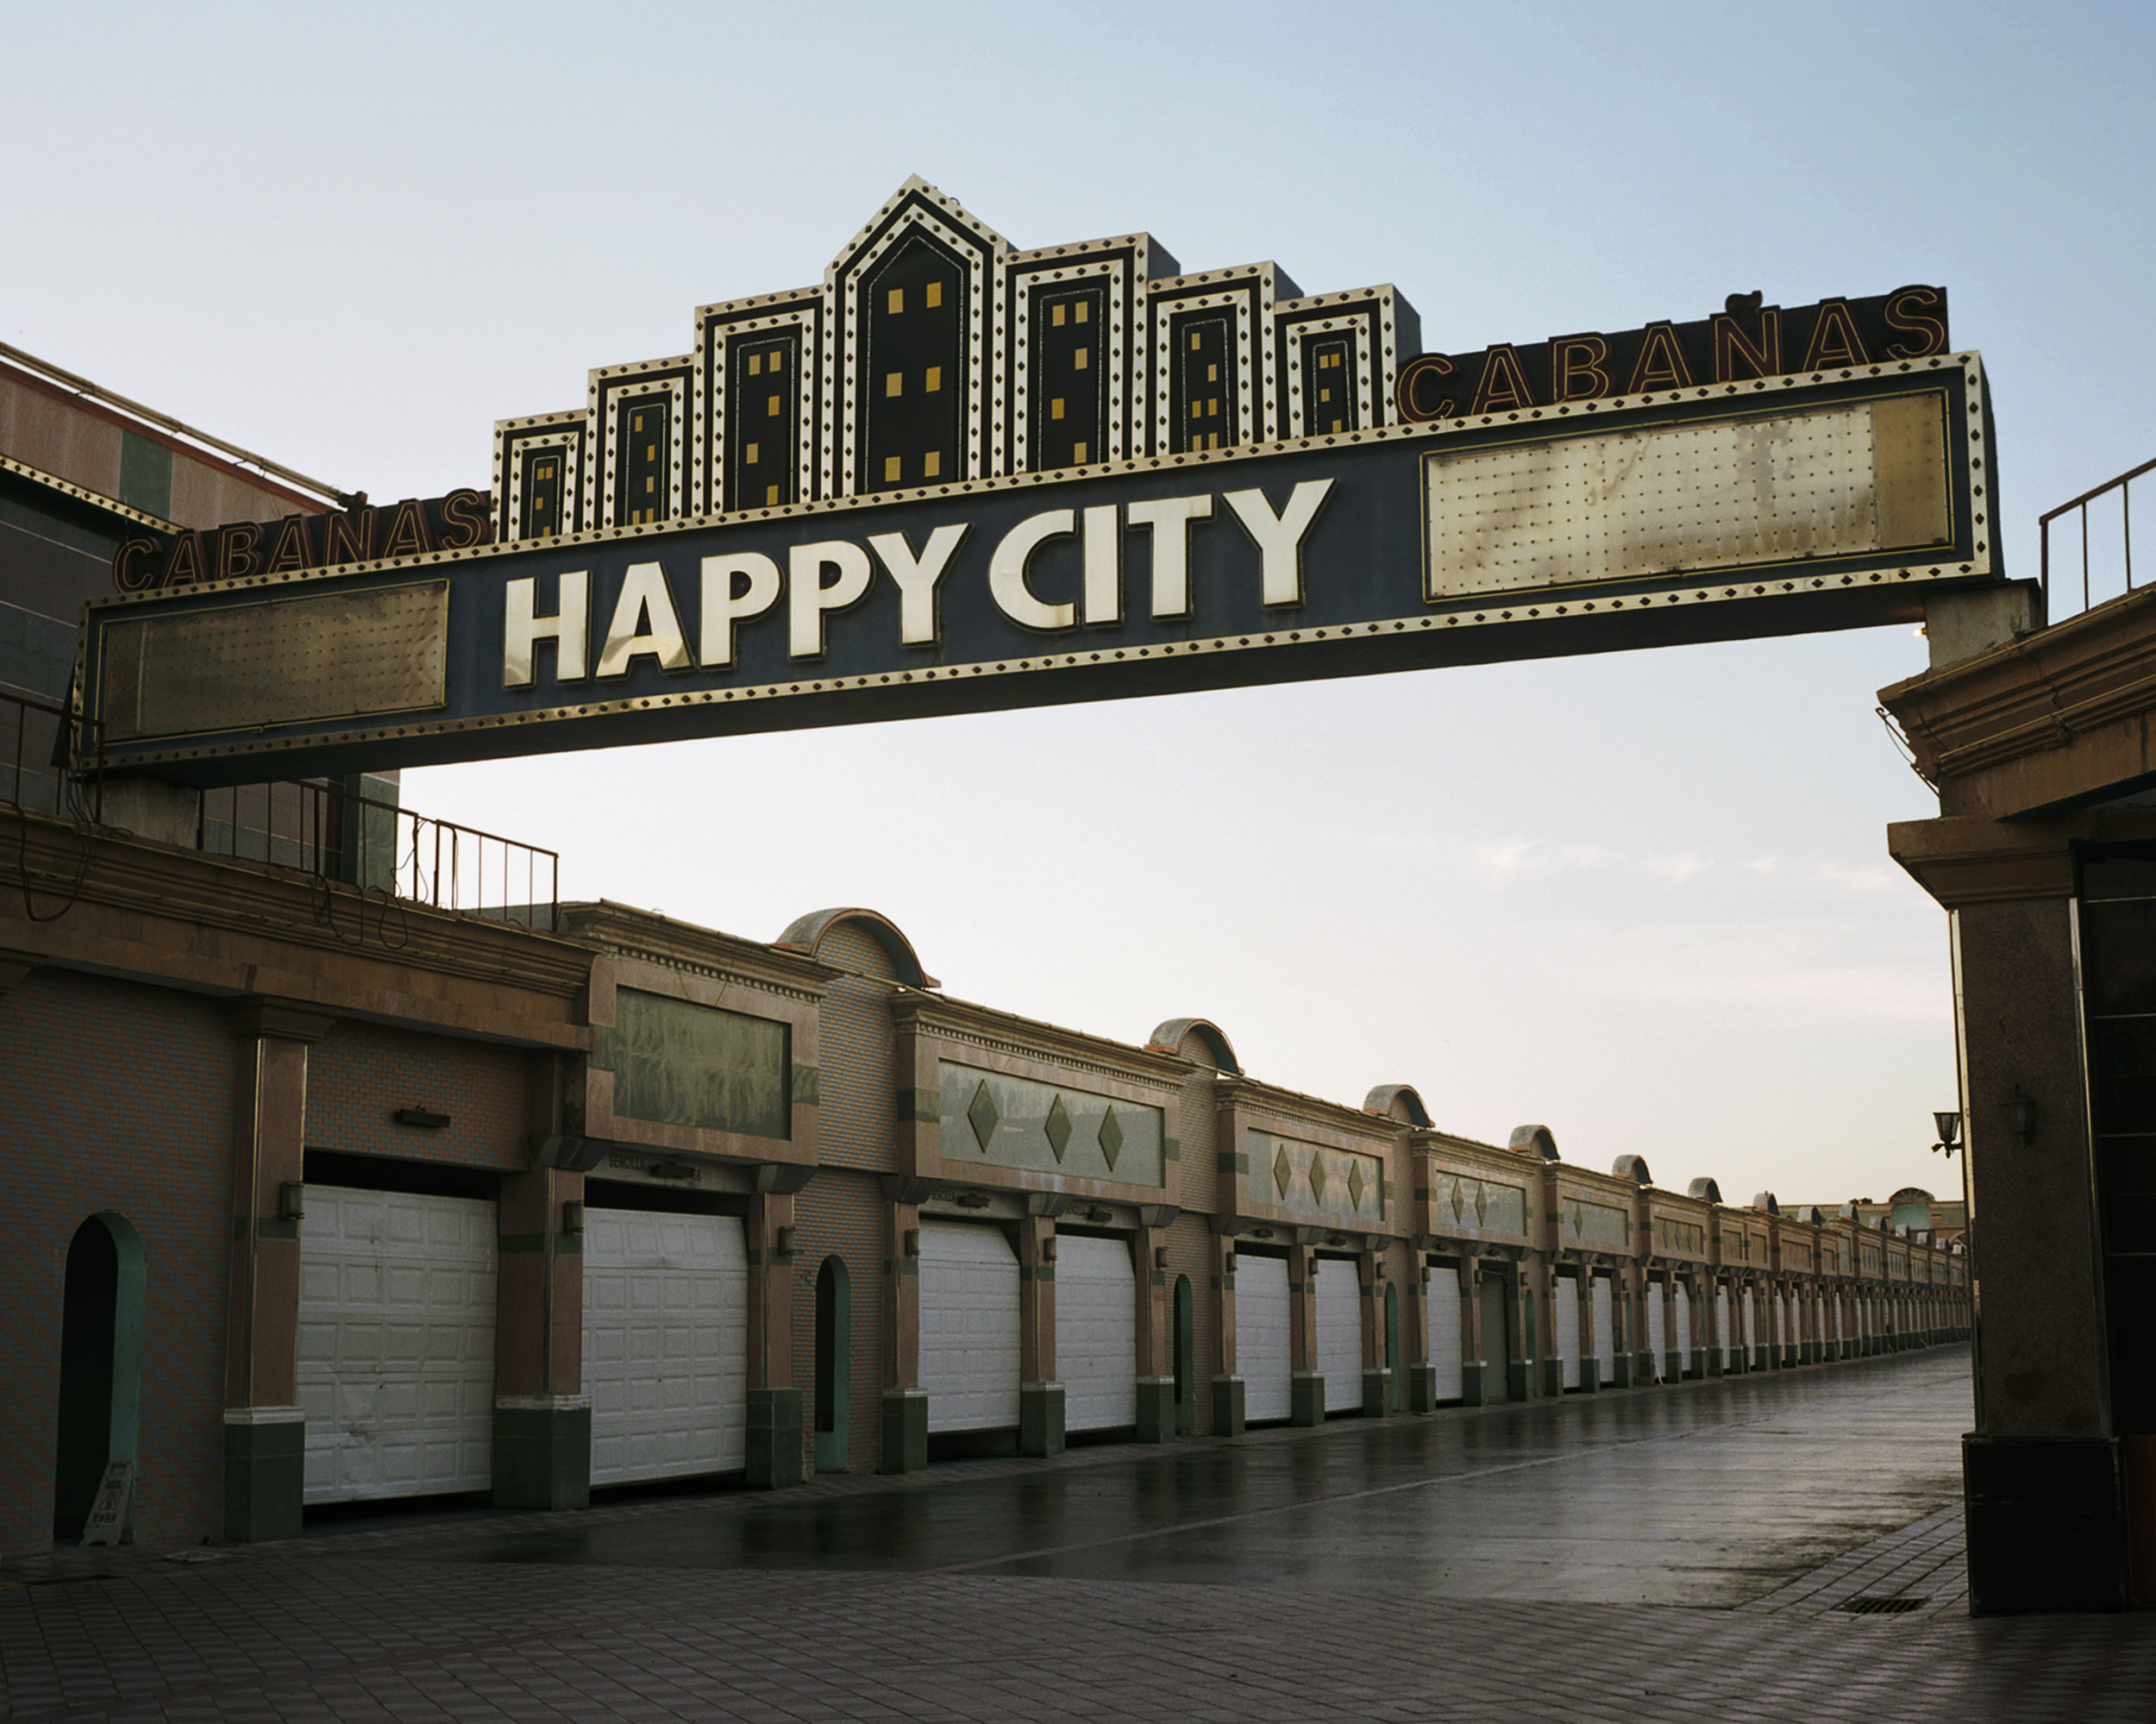 1 HAPPY CITY.jpg